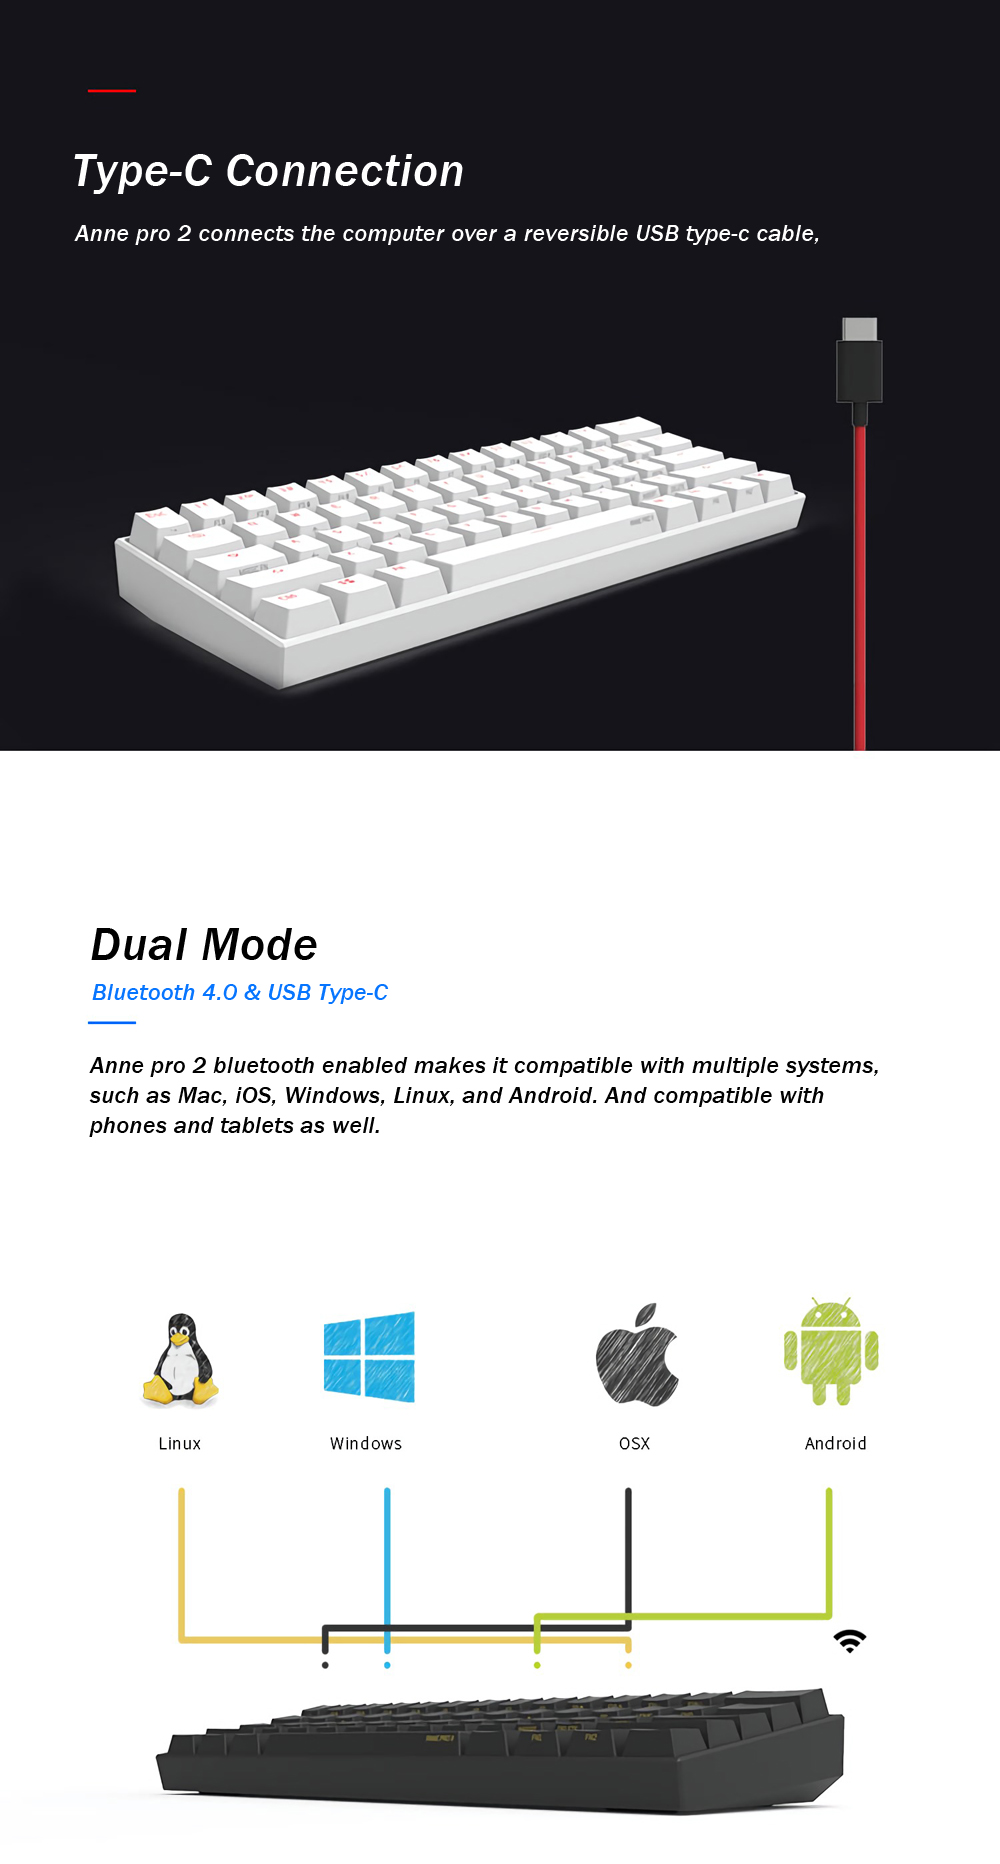 [Kailh BOX Switch]Obins Anne Pro 2 60% NKRO bluetooth 4.0 Type-C RGB Mechanical Gaming Keyboard